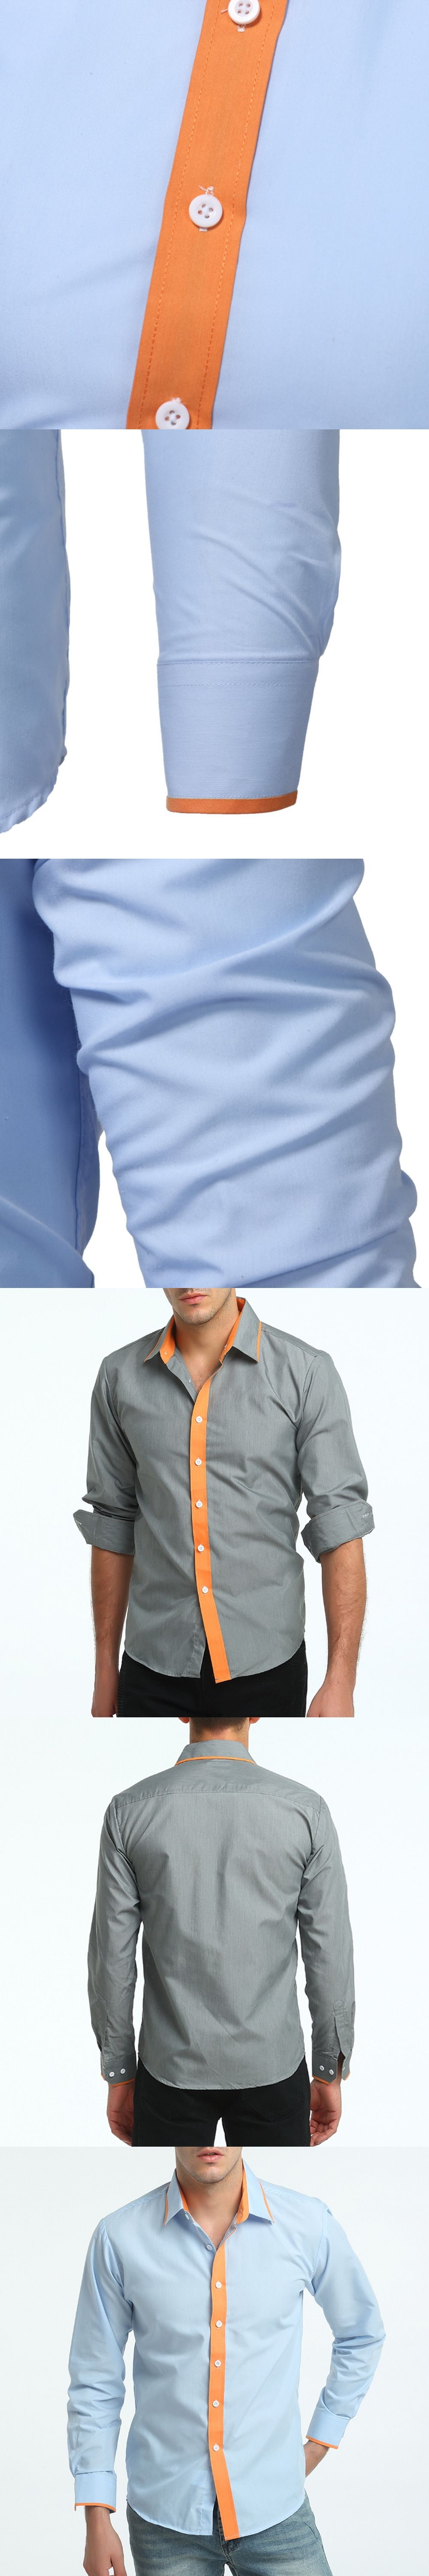 Nordstrom Mens Dress Shirt Brands